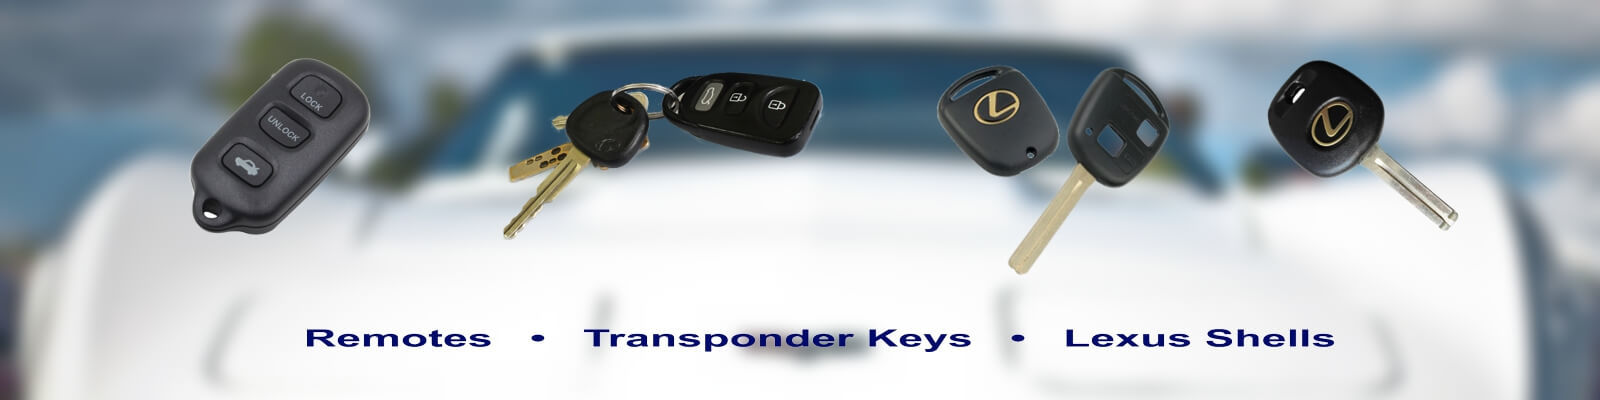 letter g lexus key smart keys